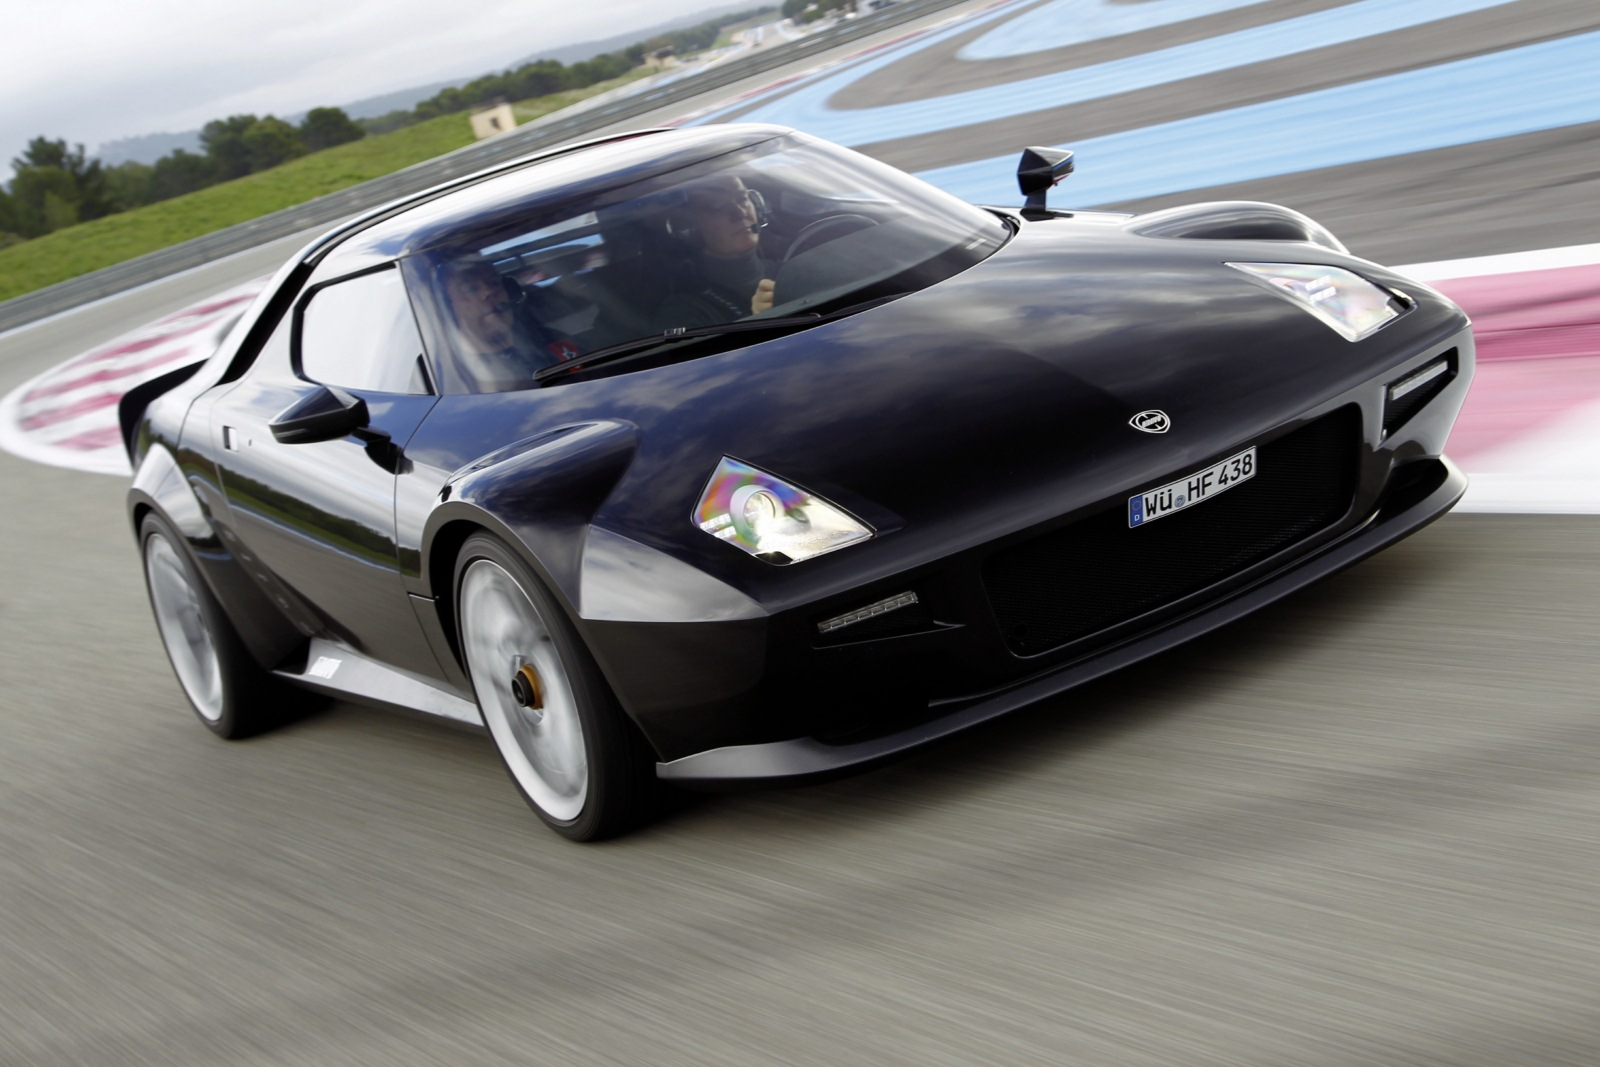 new-stratos-photo-gallery-9